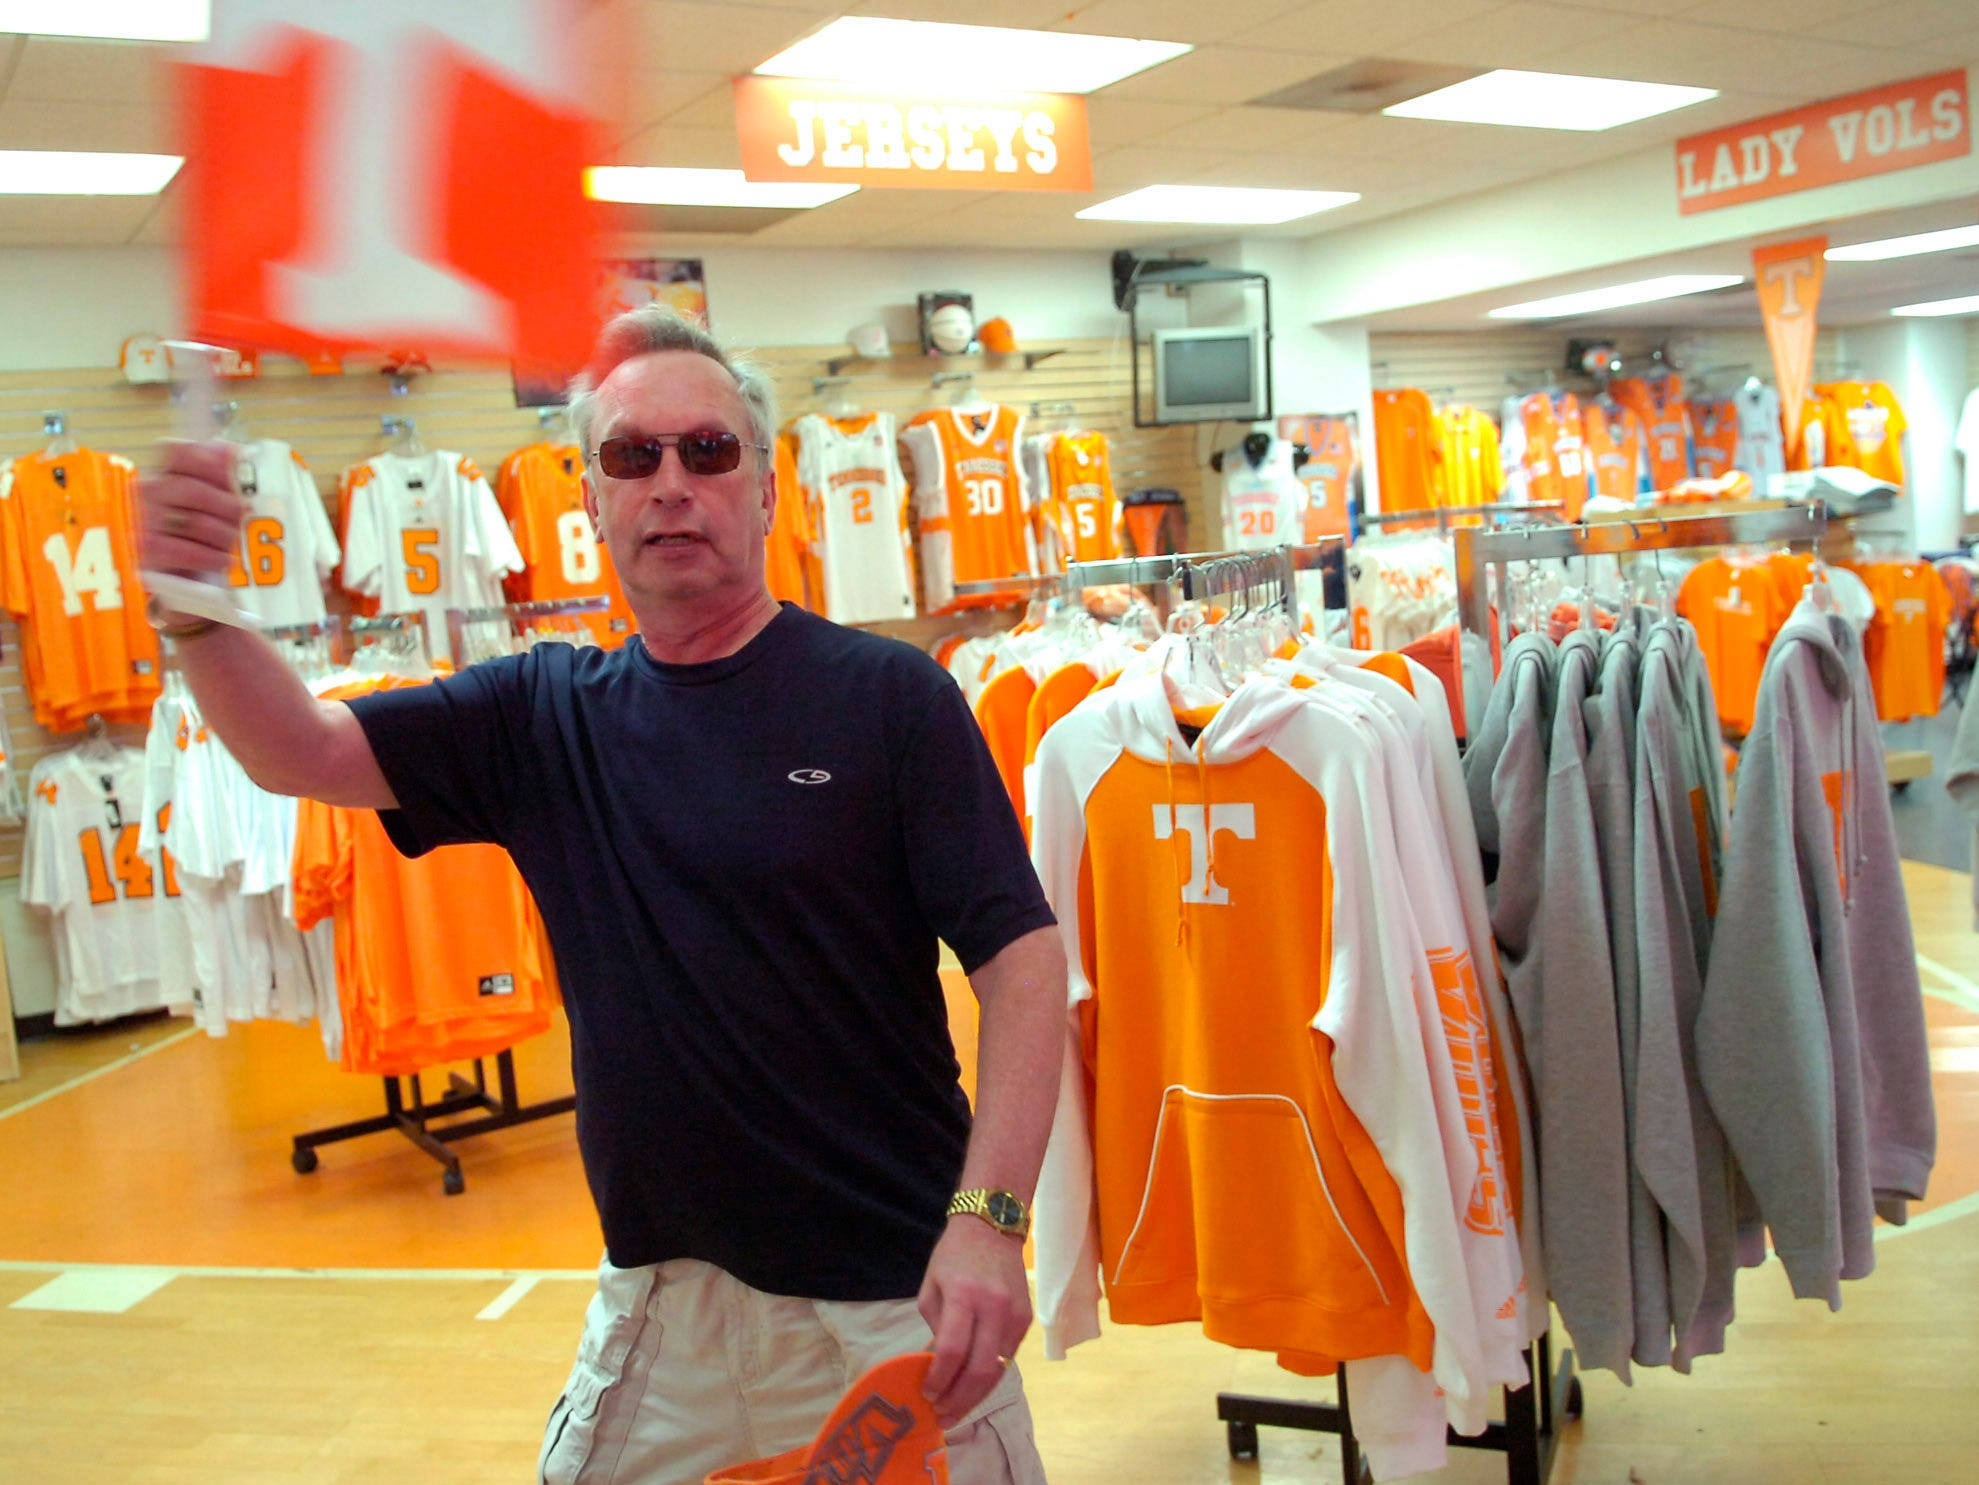 KNS sportswriter John Adams shops for his celebrity coaching gear on April 15, 2010. Adams with coach the orange team on Saturday at the Orange and White game.